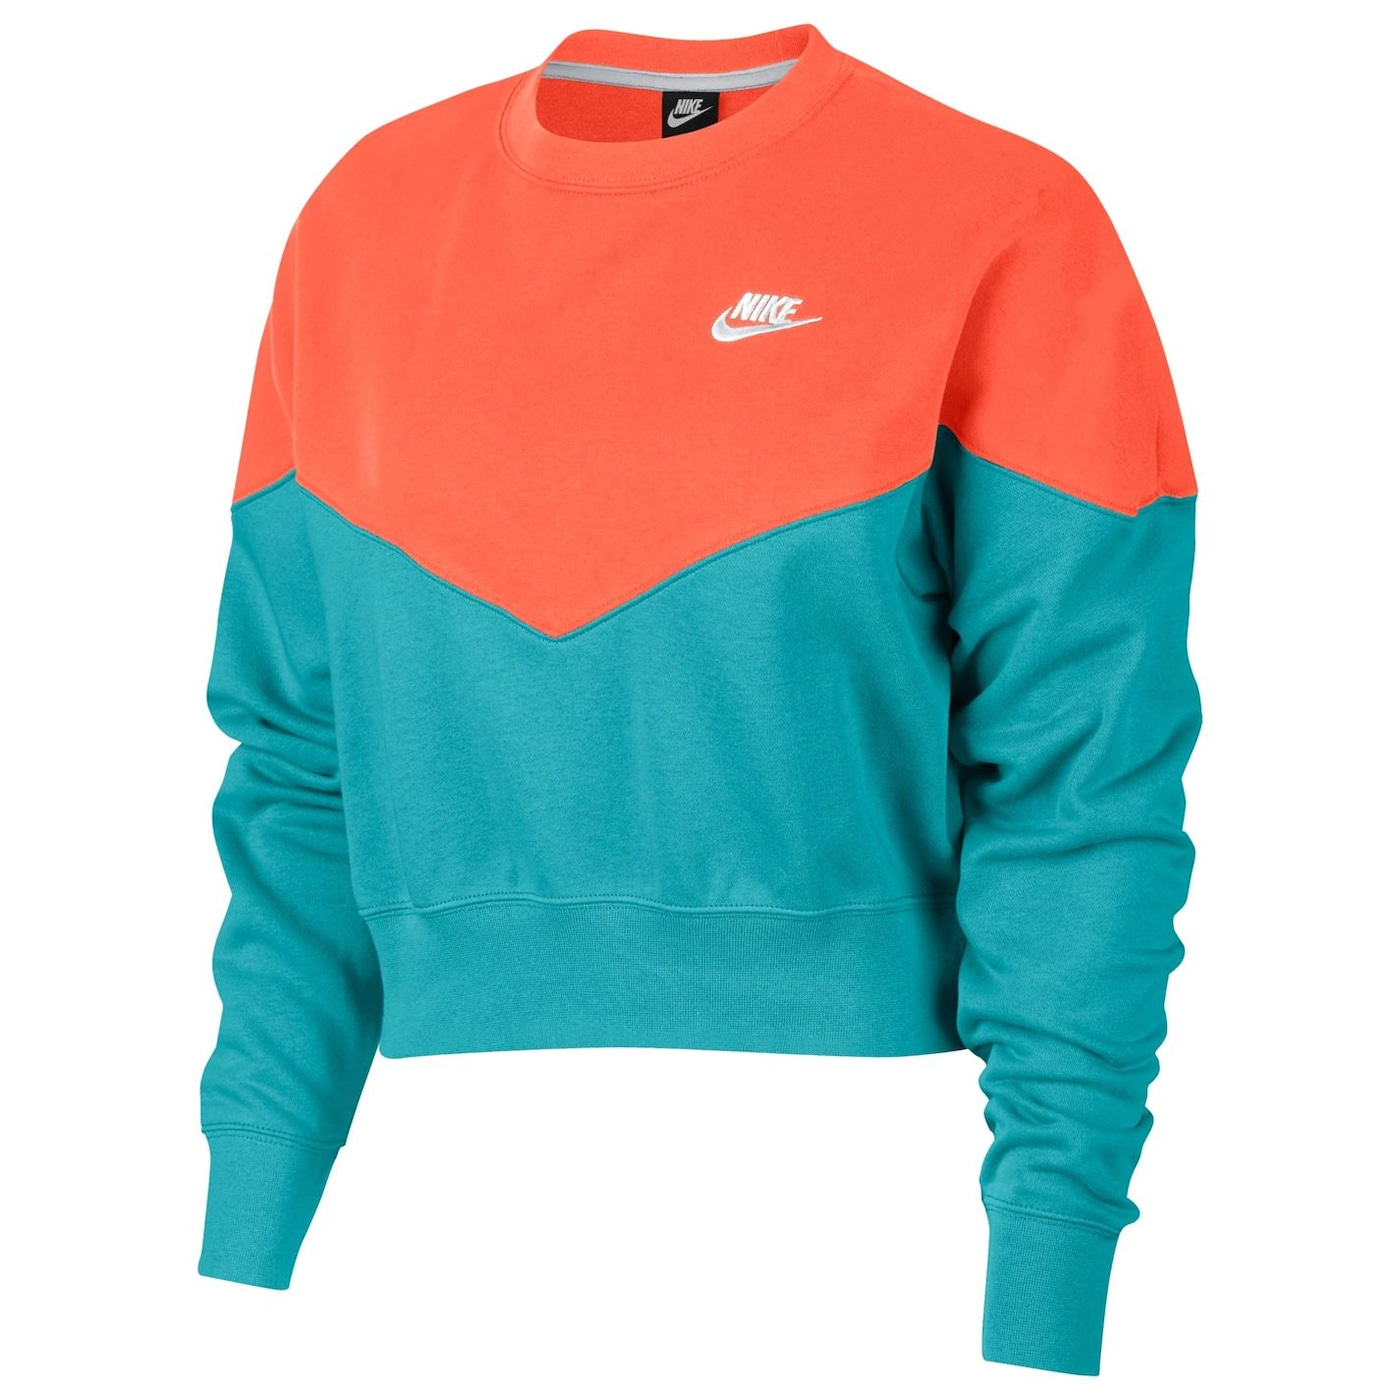 Nike Heritage Sweatshirt Ladies